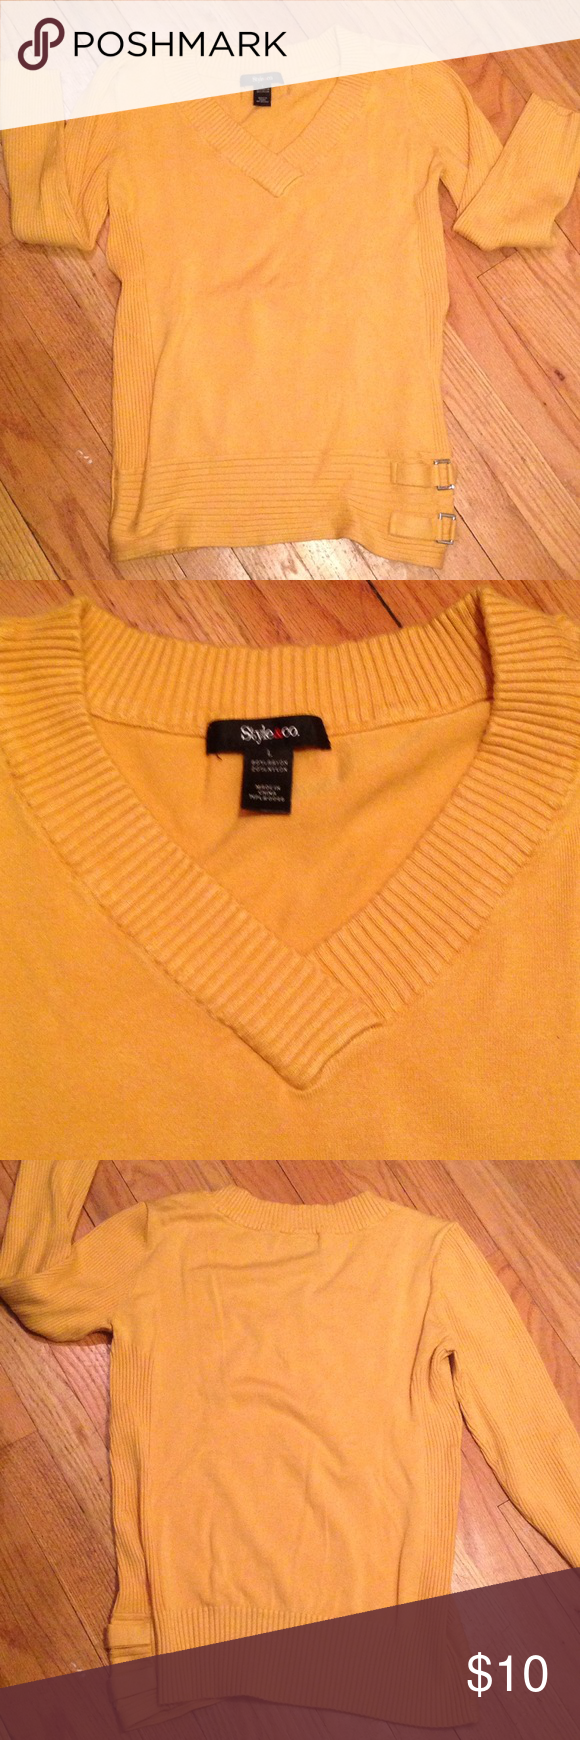 Style & Co Sweater   Stretches, Gold and Customer support